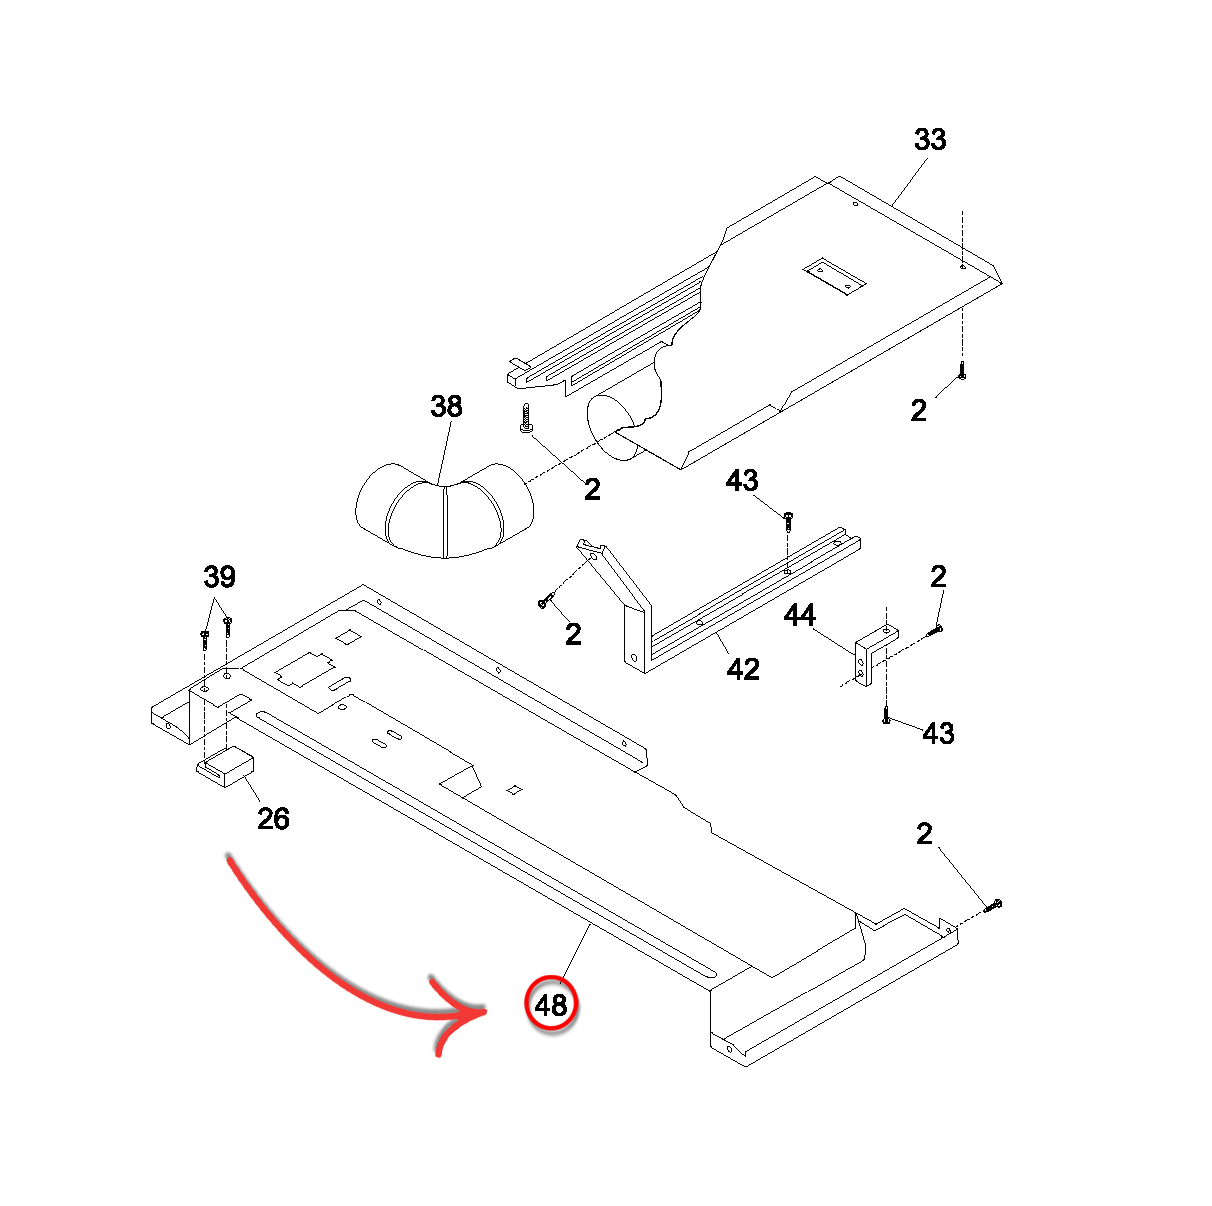 Kenmore 417 Dryer Heating Element Assembly